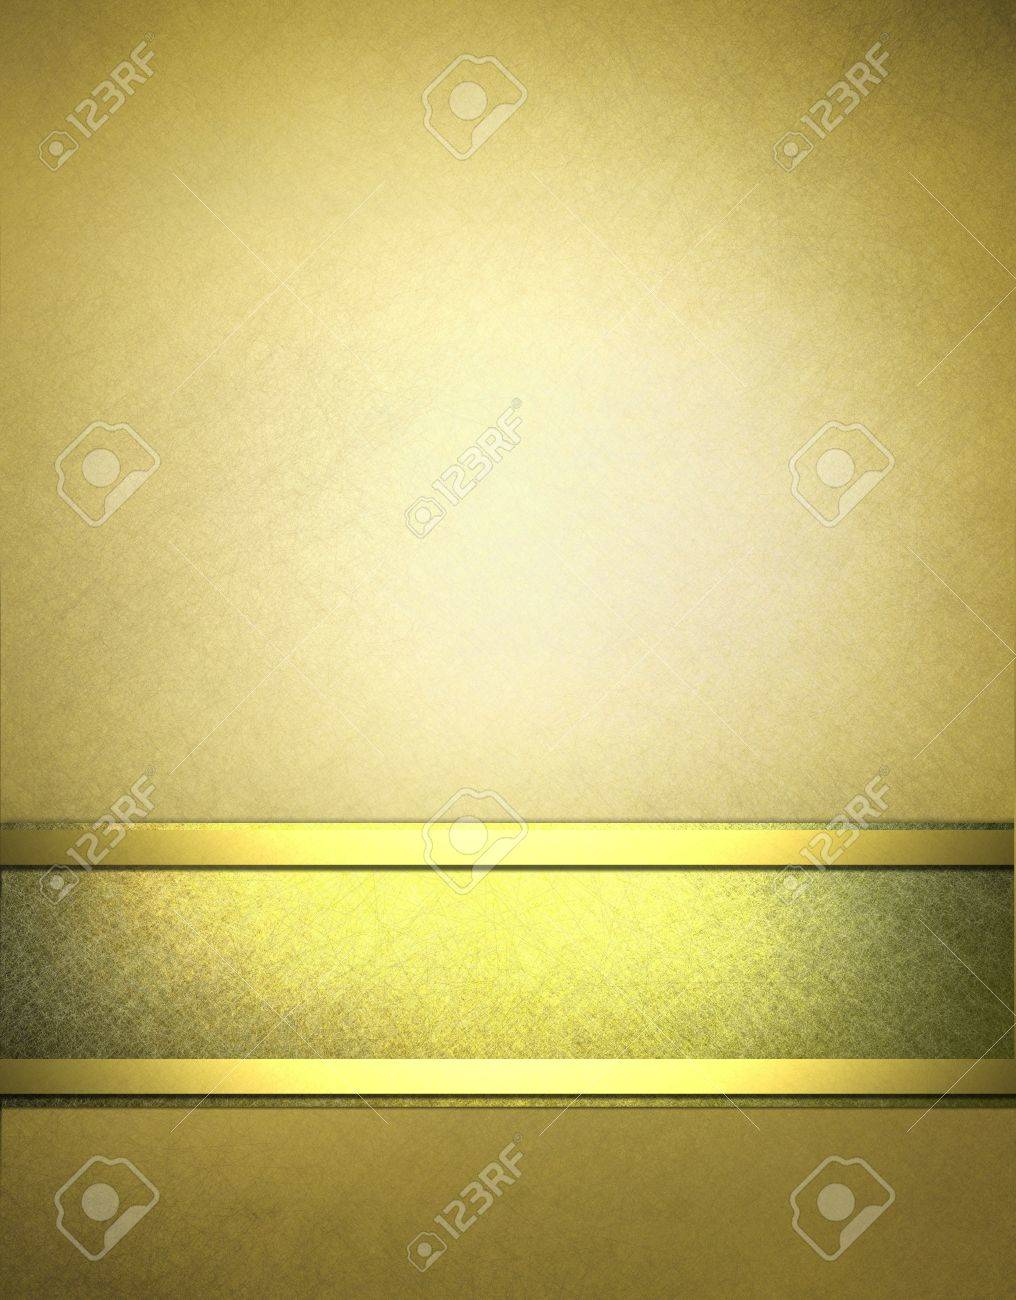 Elegant Gold Background Stock Photo - 8671723